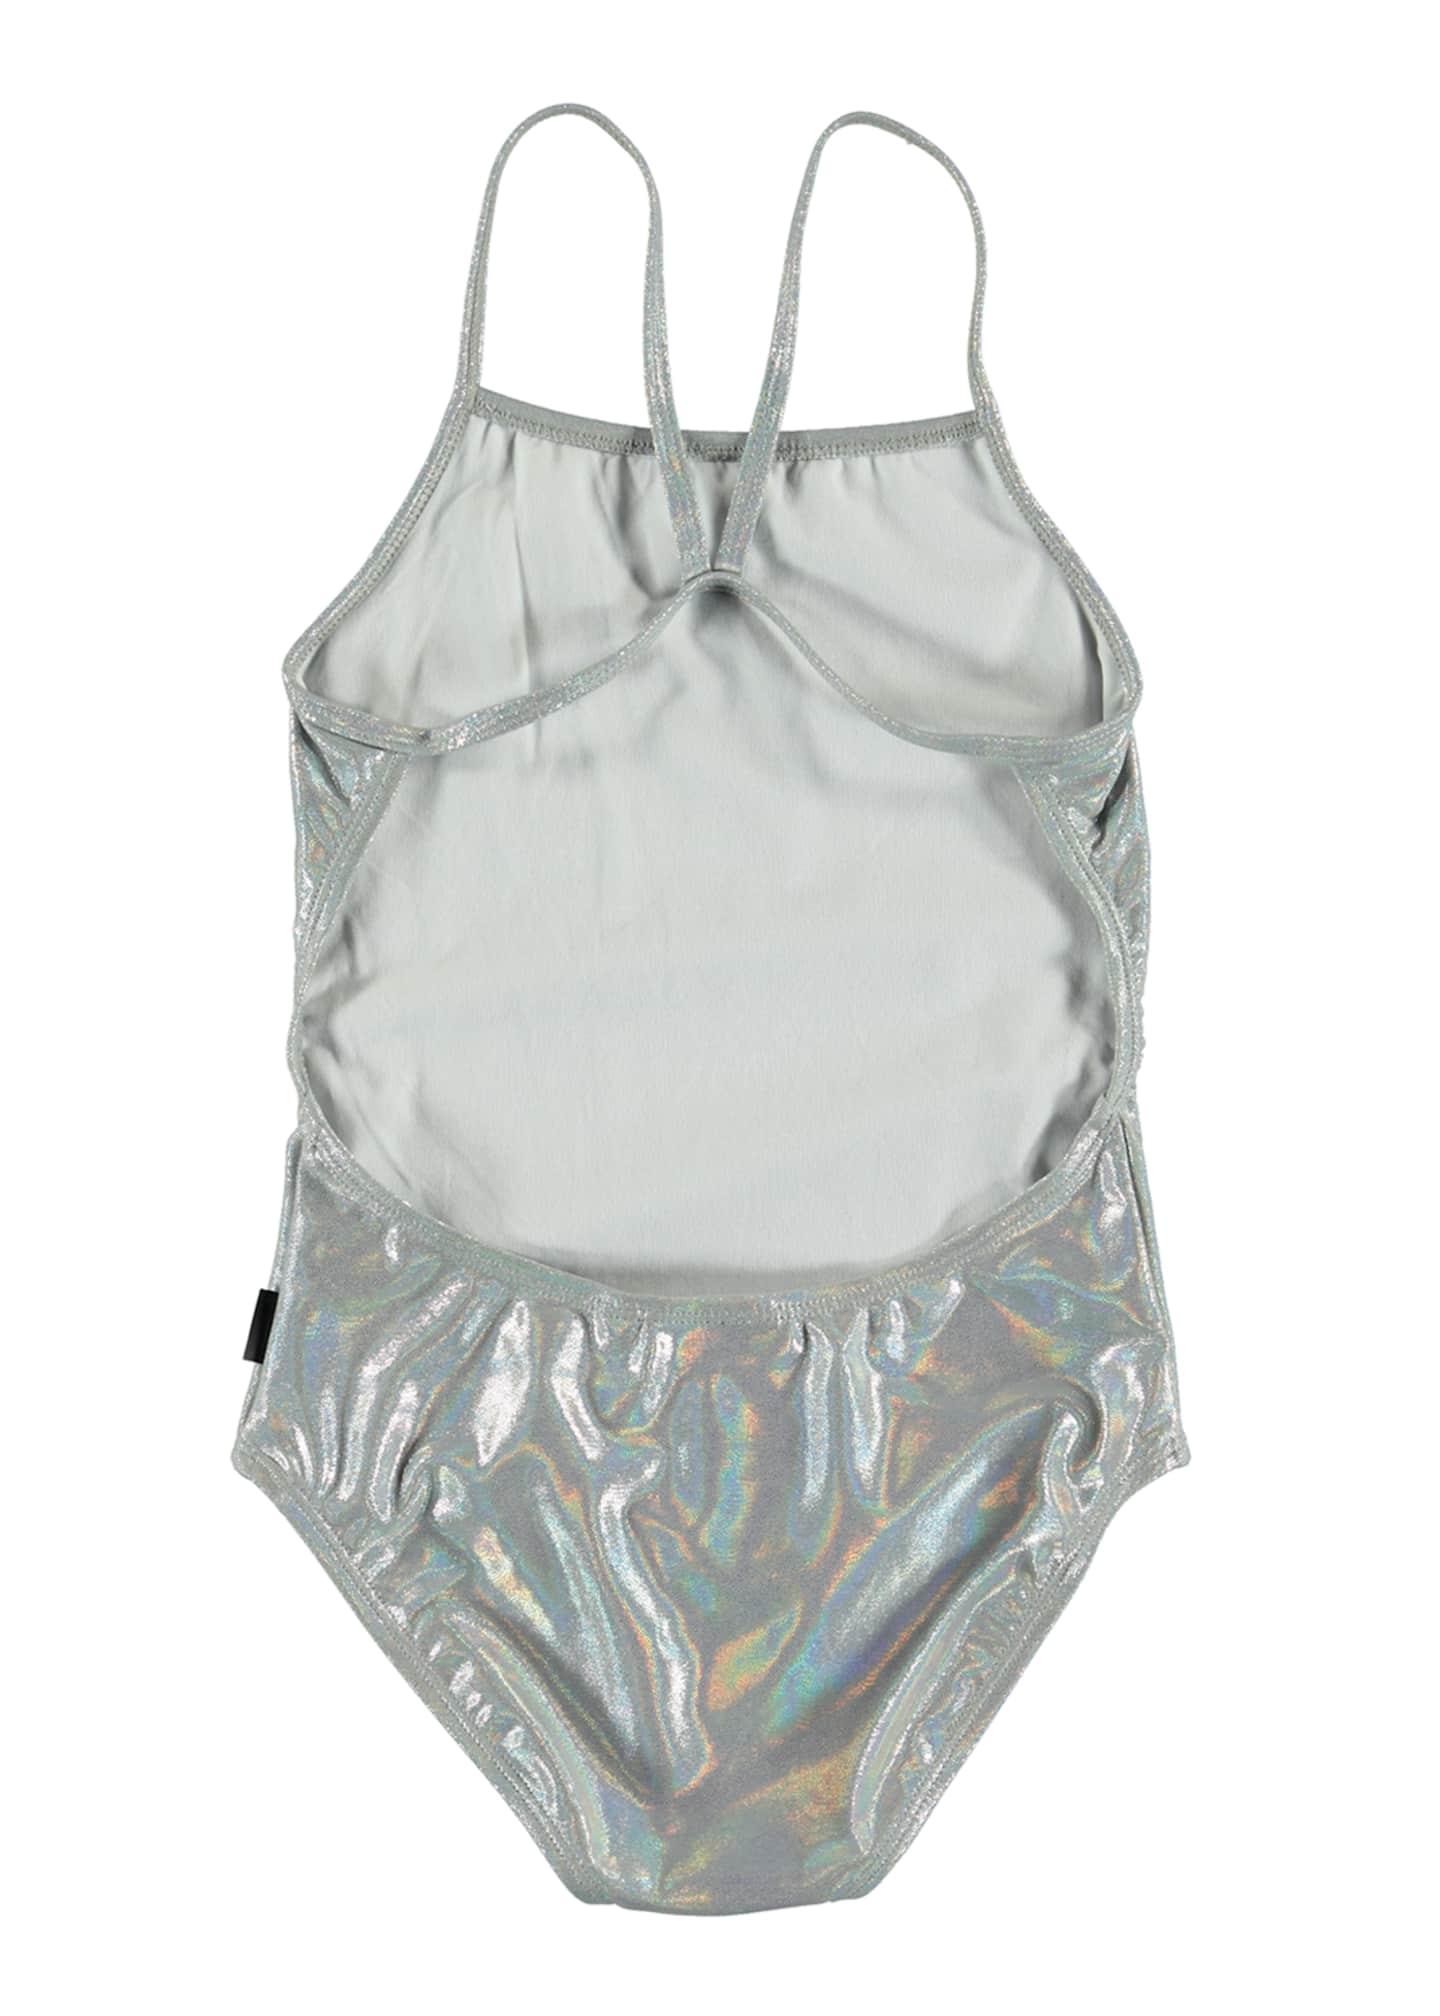 Image 2 of 2: Girl's Neda Silver Holographic One-Piece Swimsuit, Size 5-12